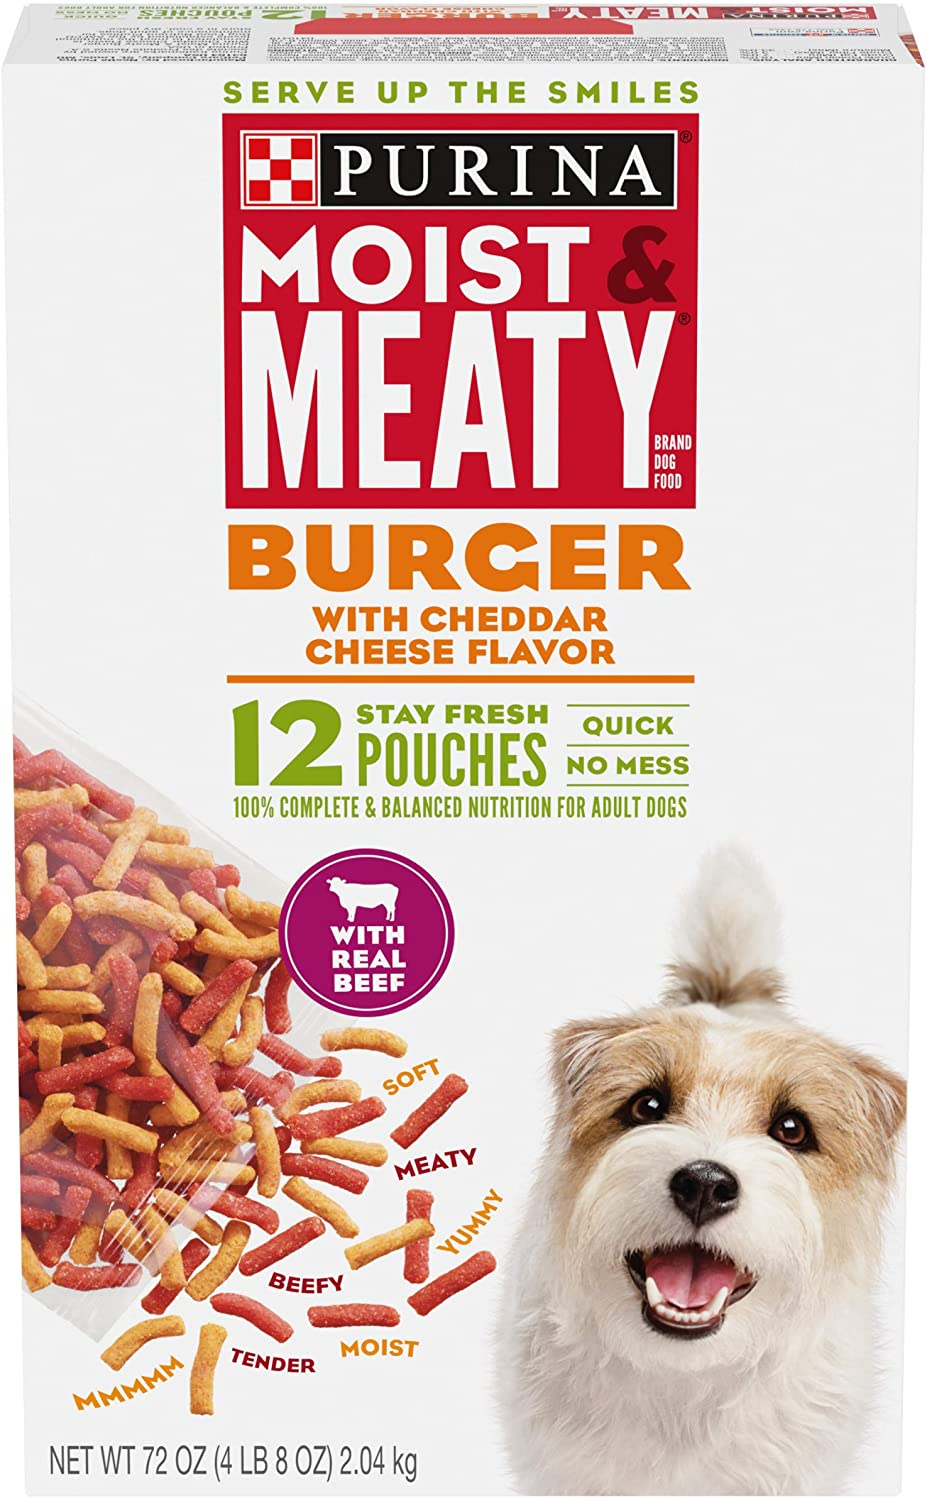 Purina Moist & Meaty Dry Dog Food, Burger with Cheddar Cheese Flavor - (4) 12 ct. Pouches